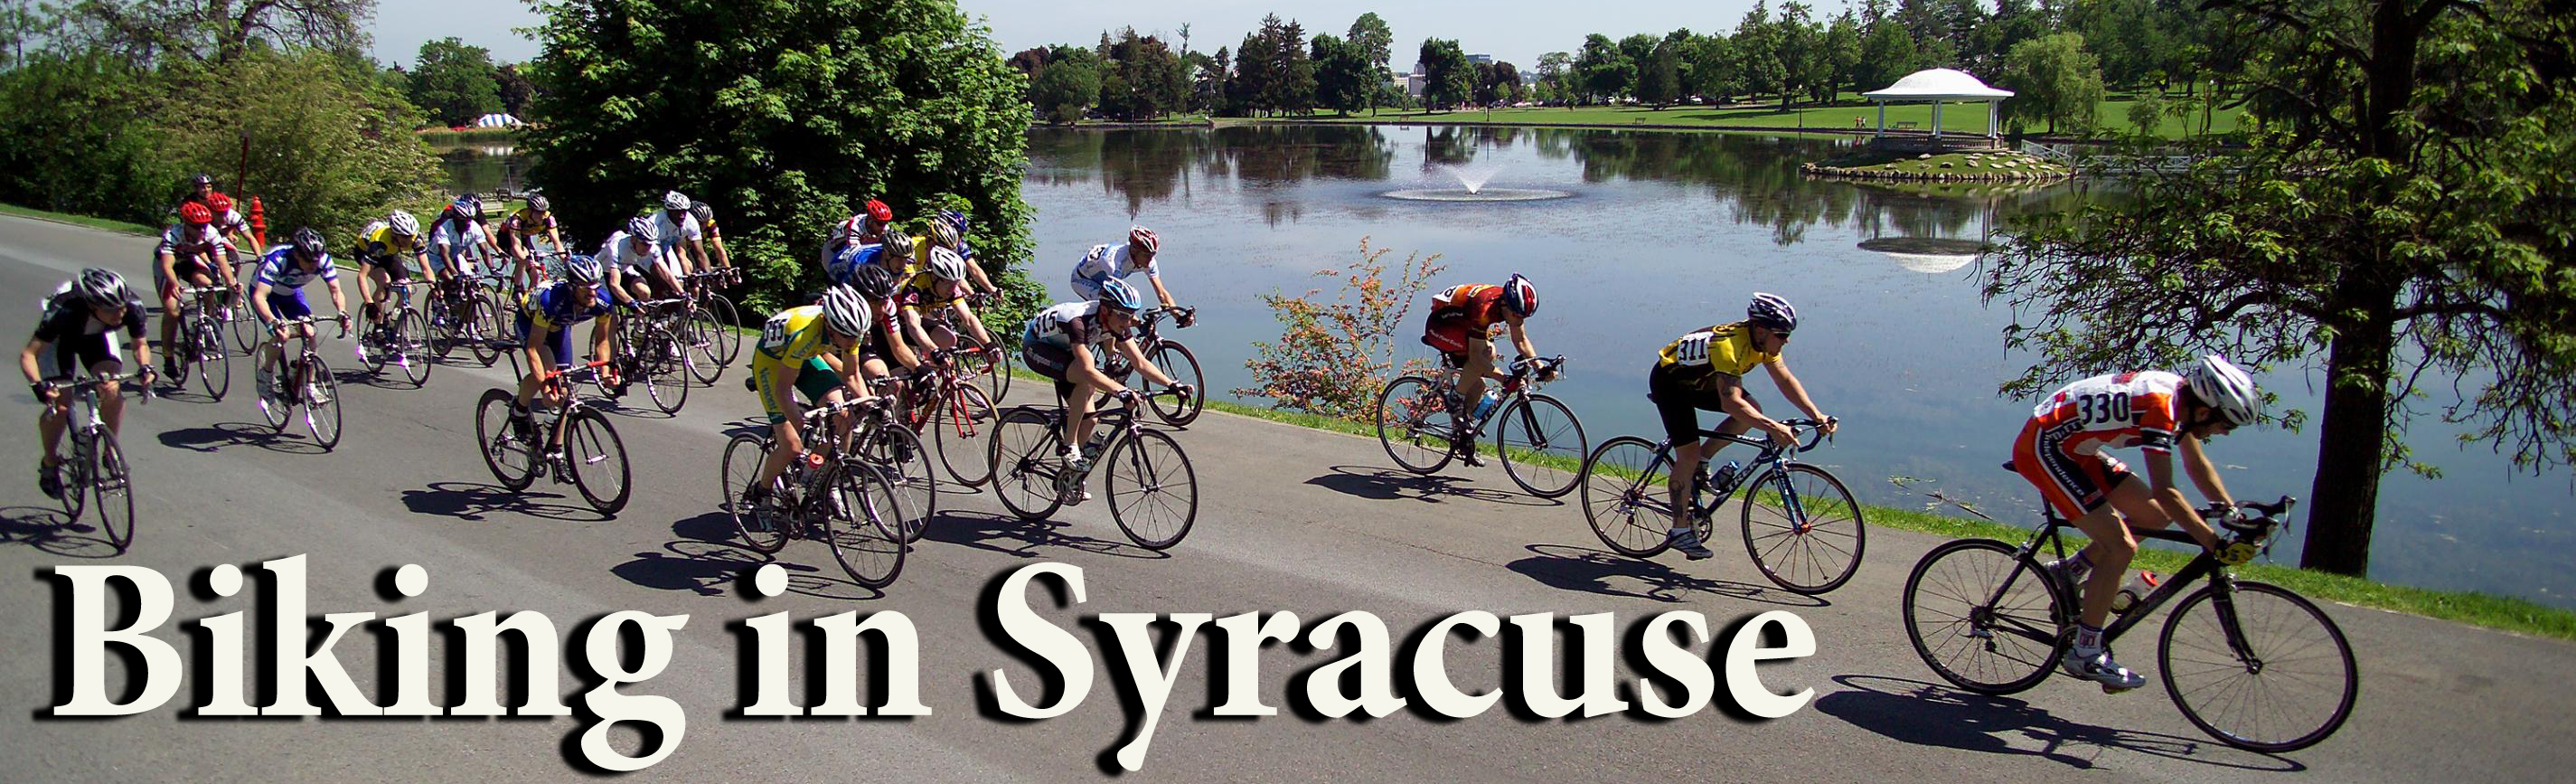 Biking in Syracuse